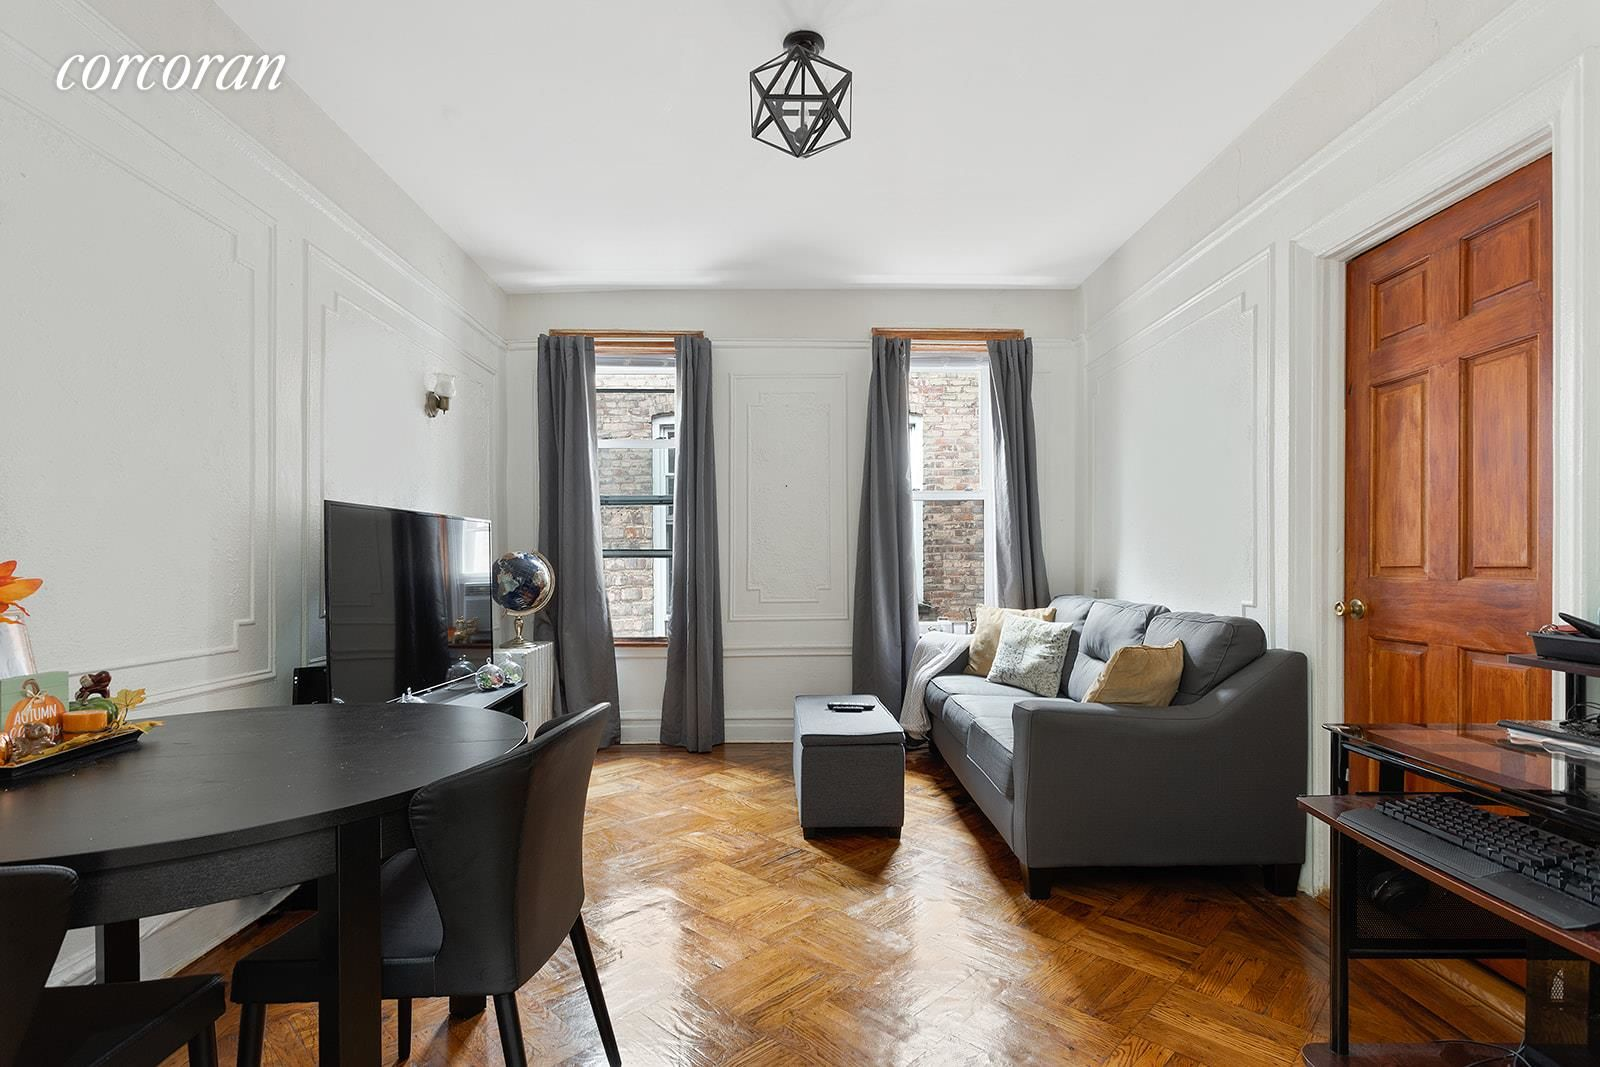 566 Osborn St Photo 4 - NYC-Real-Estate-681128